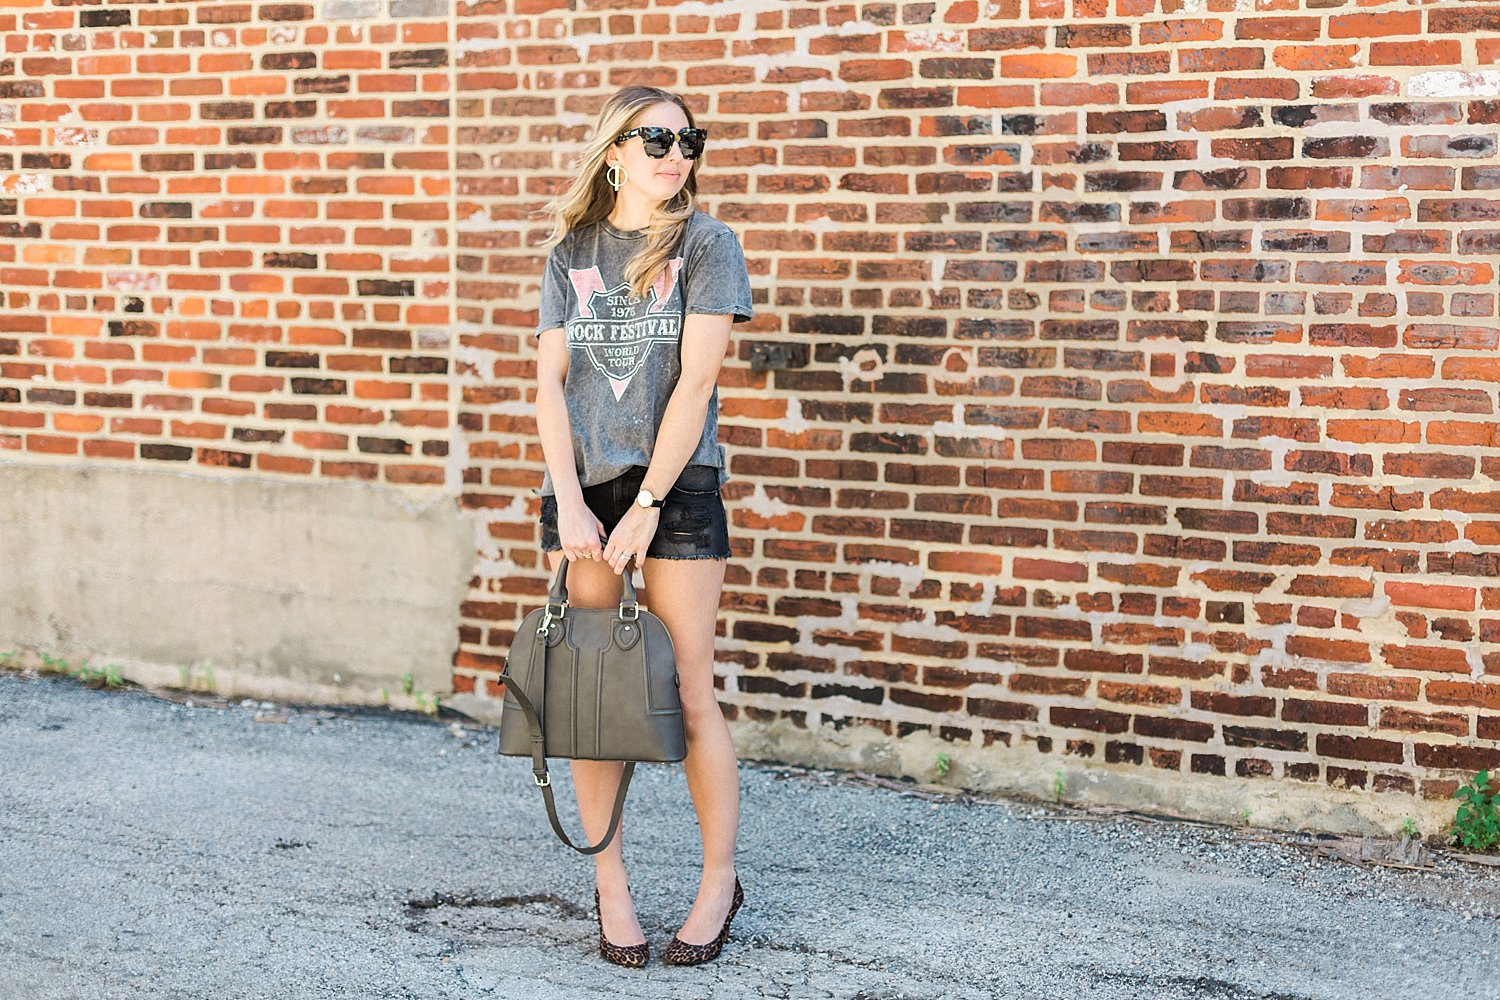 fashion blogger posing for branding photos in ripped denim shorts and a graphic tee